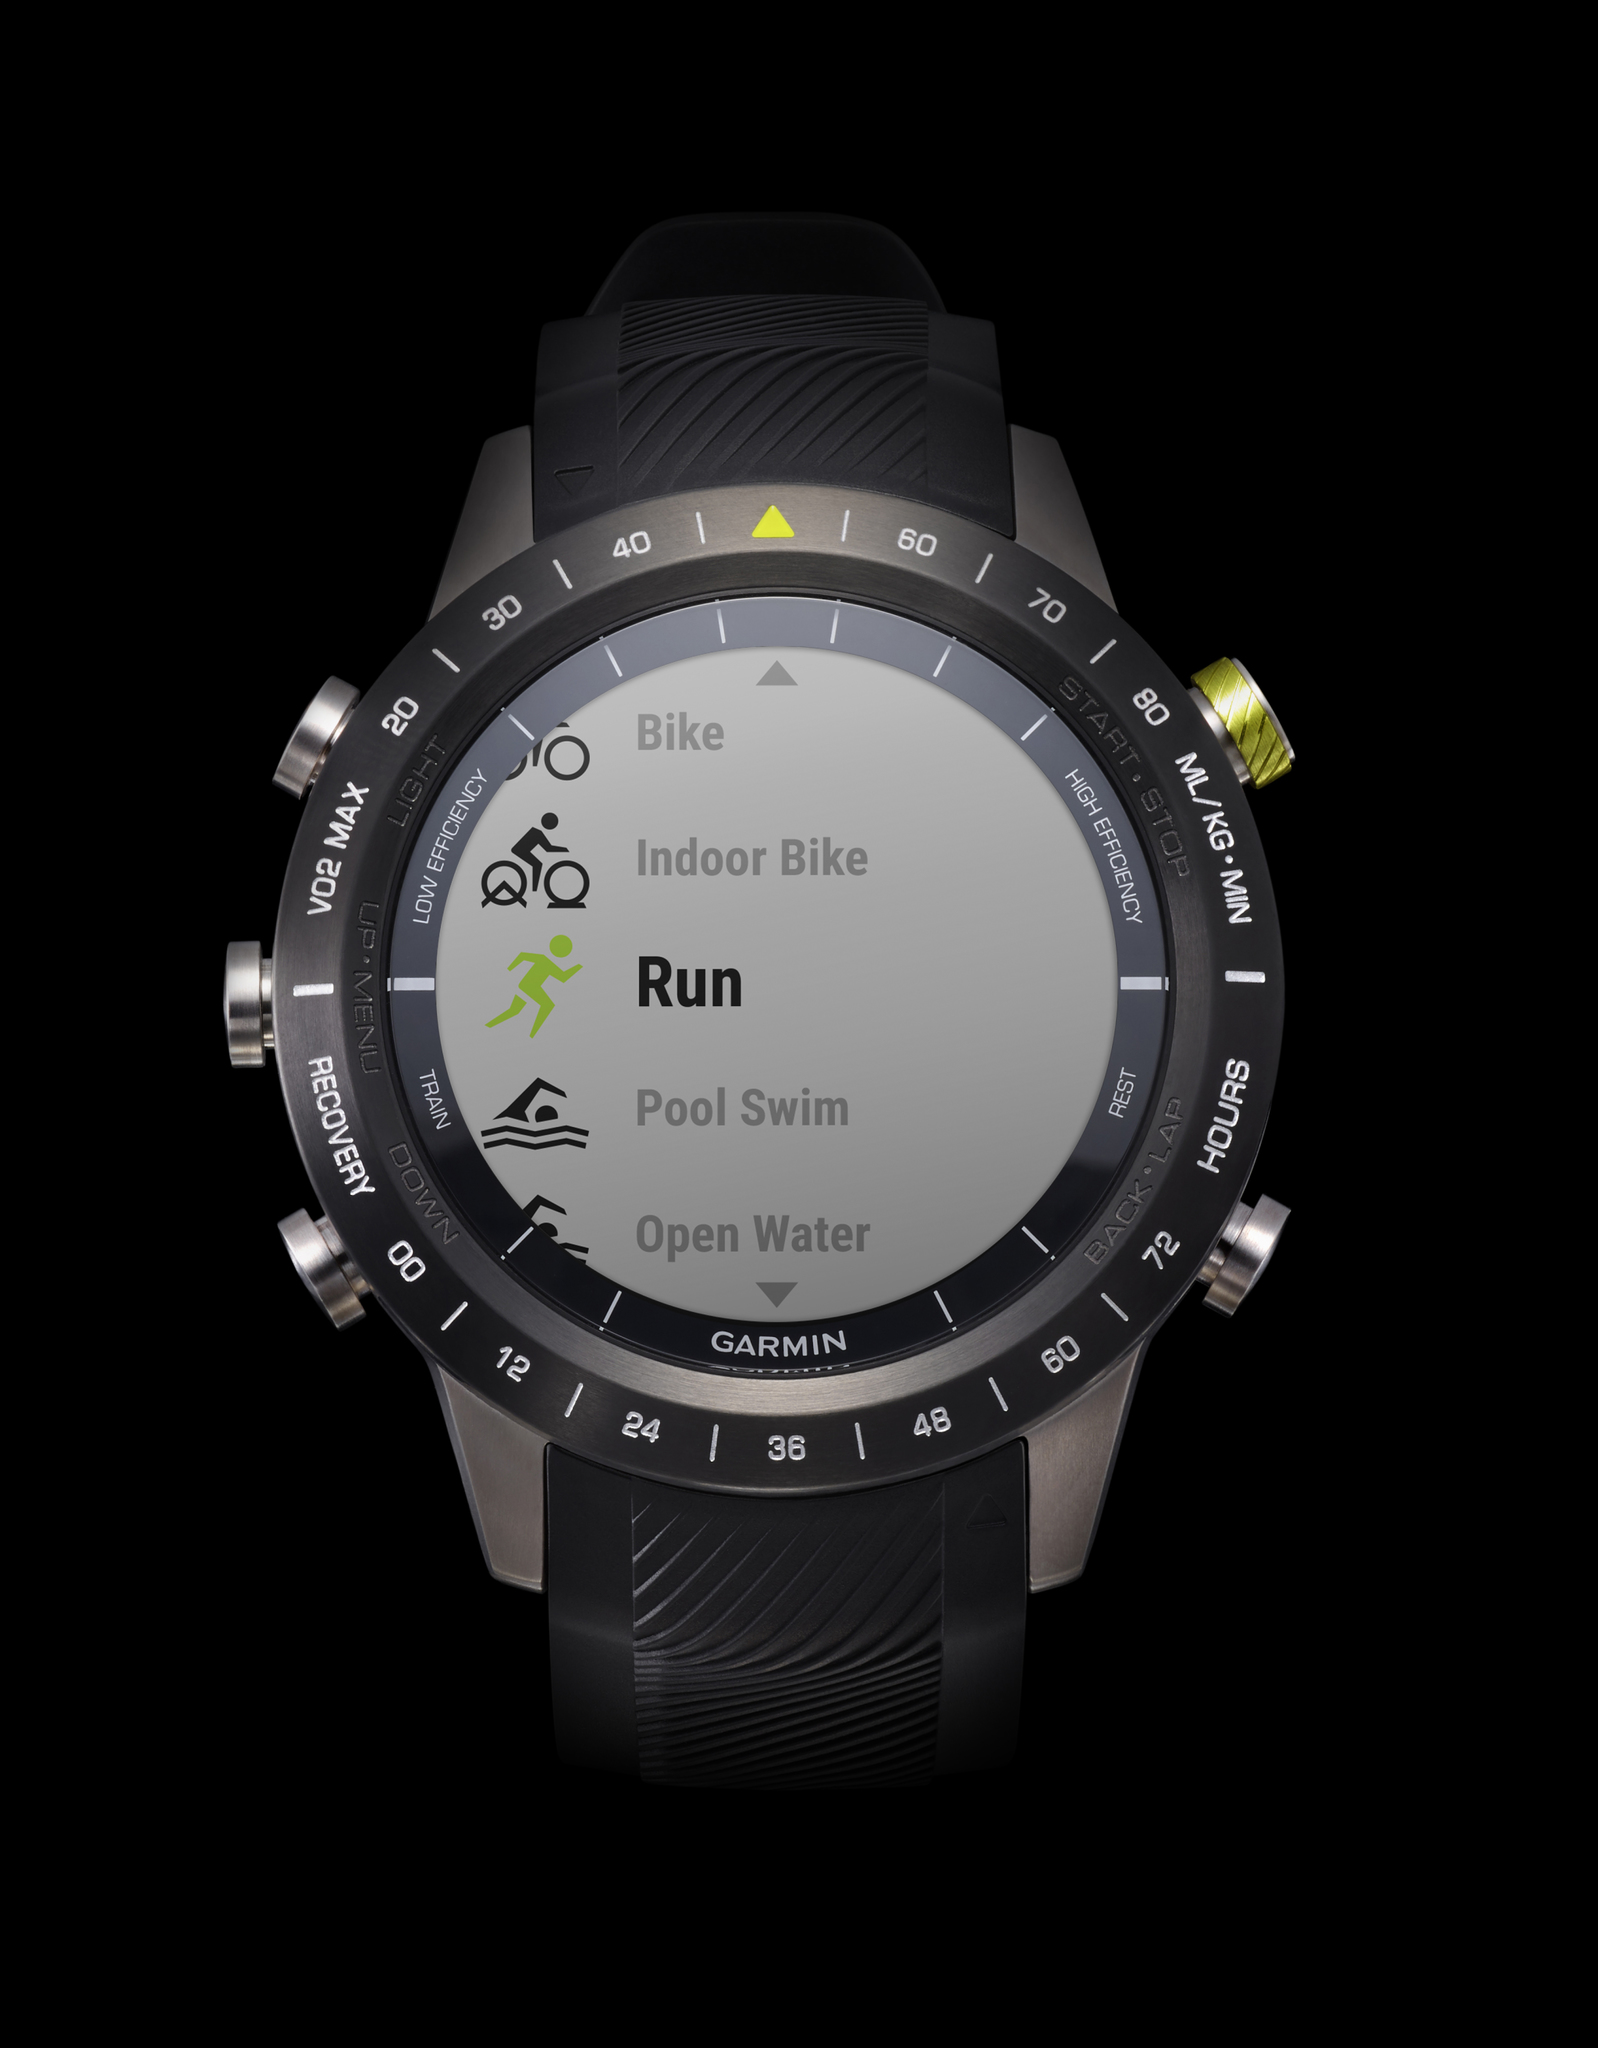 marq Athlete, reloj inteligente, Garmin marq aviaor, colección Marq de Garmin, smartwatches Garmin Marq, Marq Captain, Marq Driver, Marq Expedition